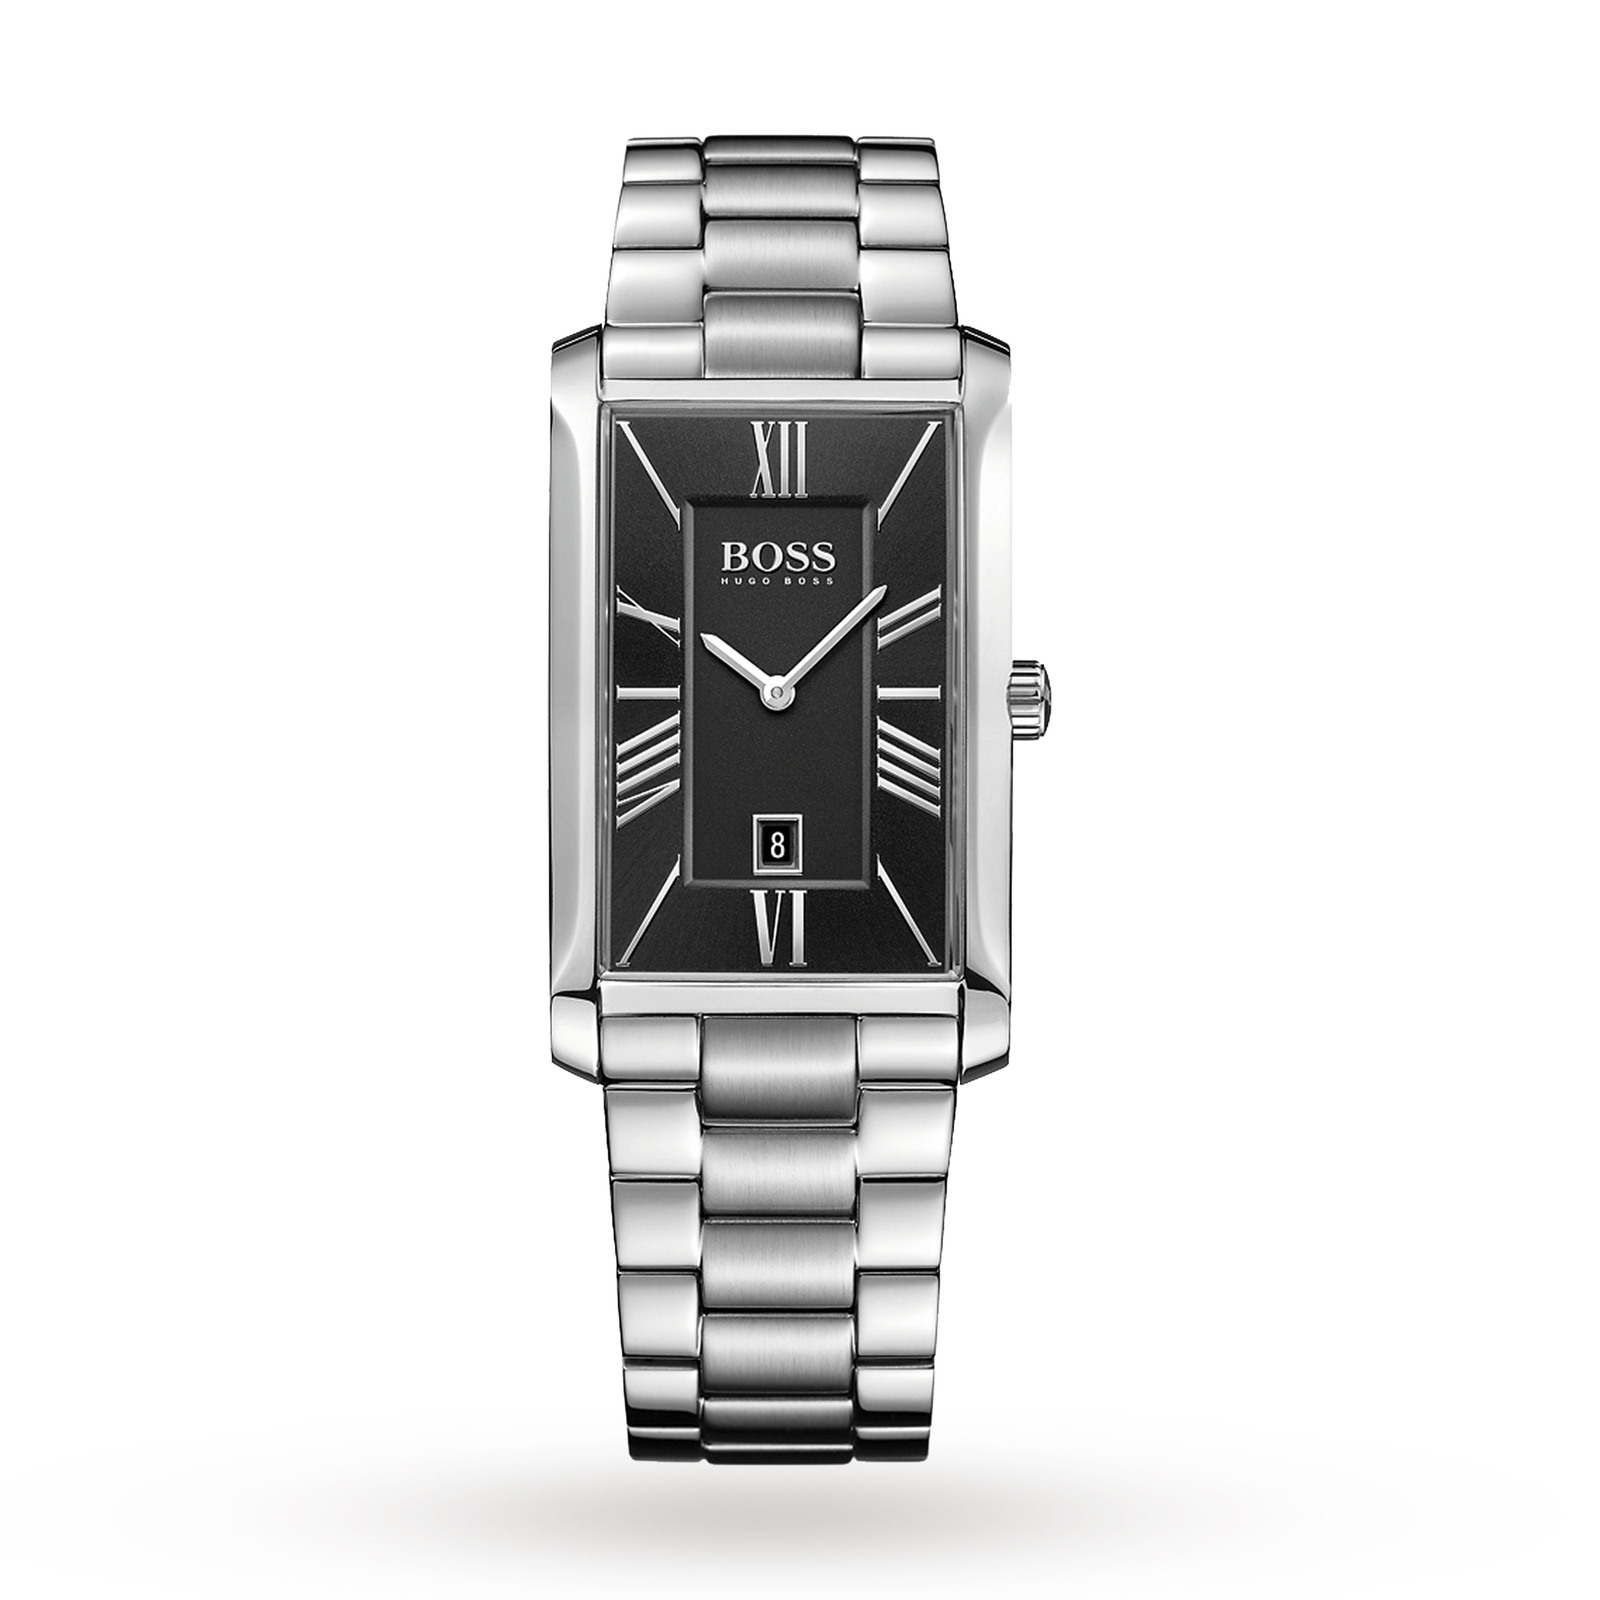 rectangular watches xxiv quartz jewelry s overstock akribos today free watch ceramic men bracelet product mens black shipping